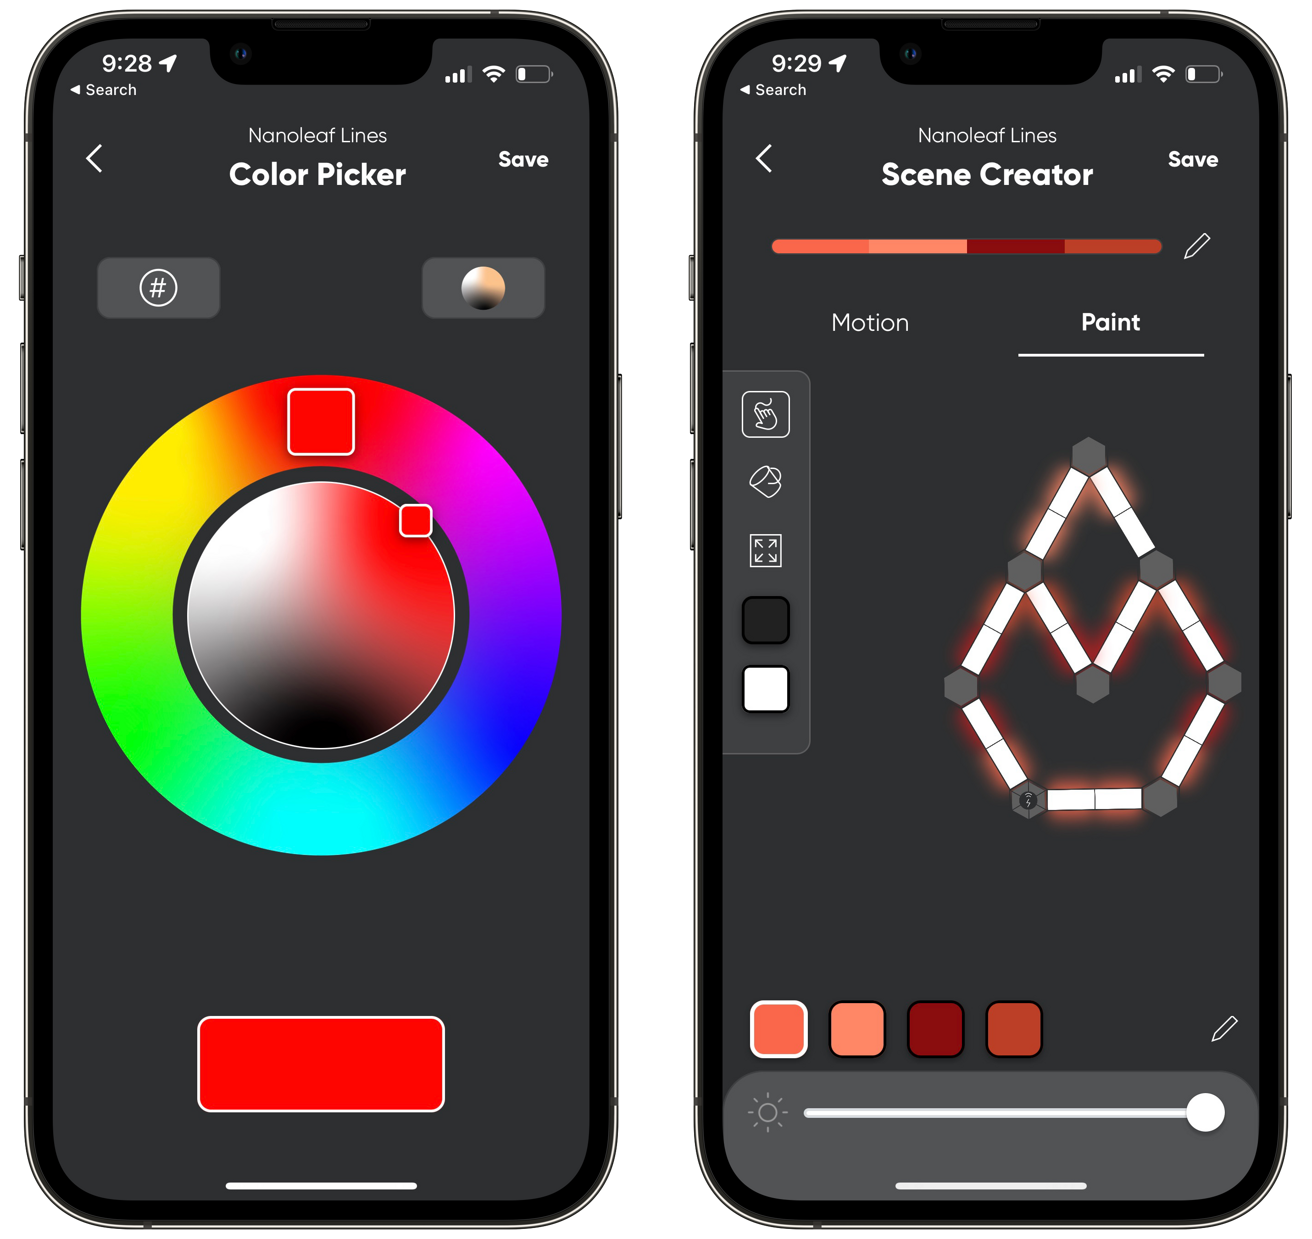 Basic color choice or creating dynamic scenes in the Nanoleaf app